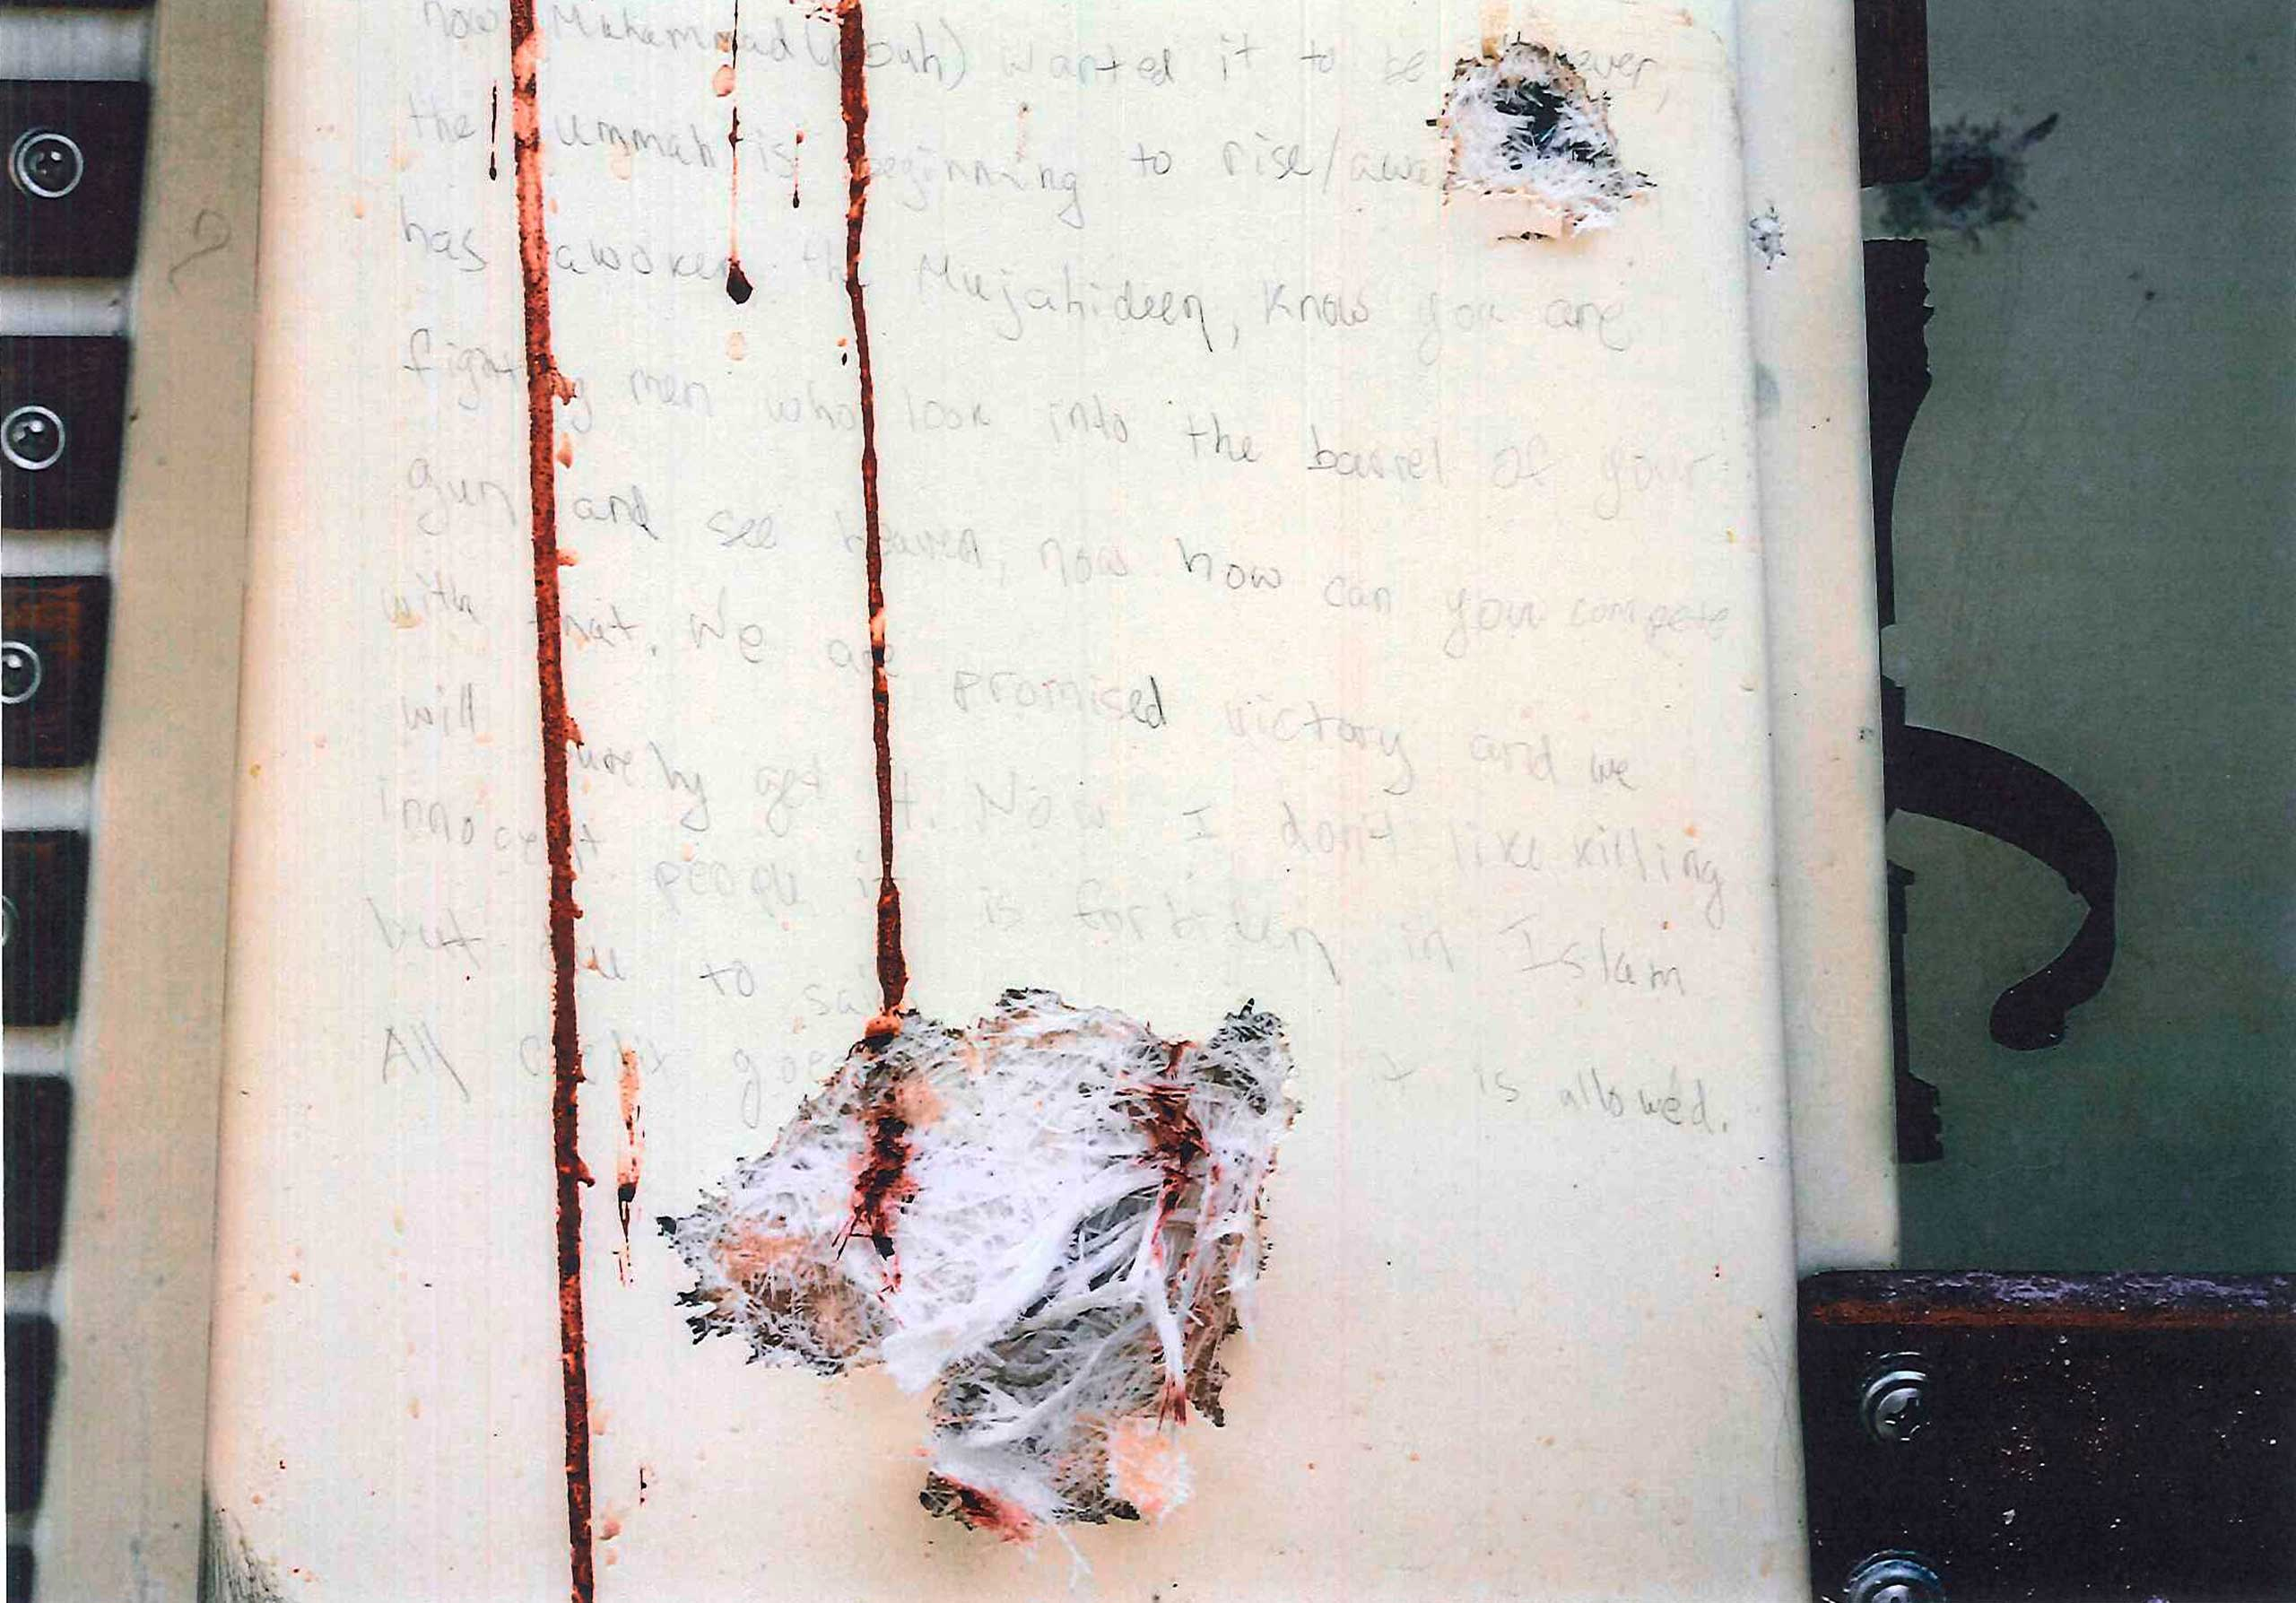 Prosecutors presented this image of a blood-stained, bullet-ridden message, allegedly written by Dzhokhar Tsarnaev on the inside of a boat, to jurors as evidence in Boston on March 10, 2015.